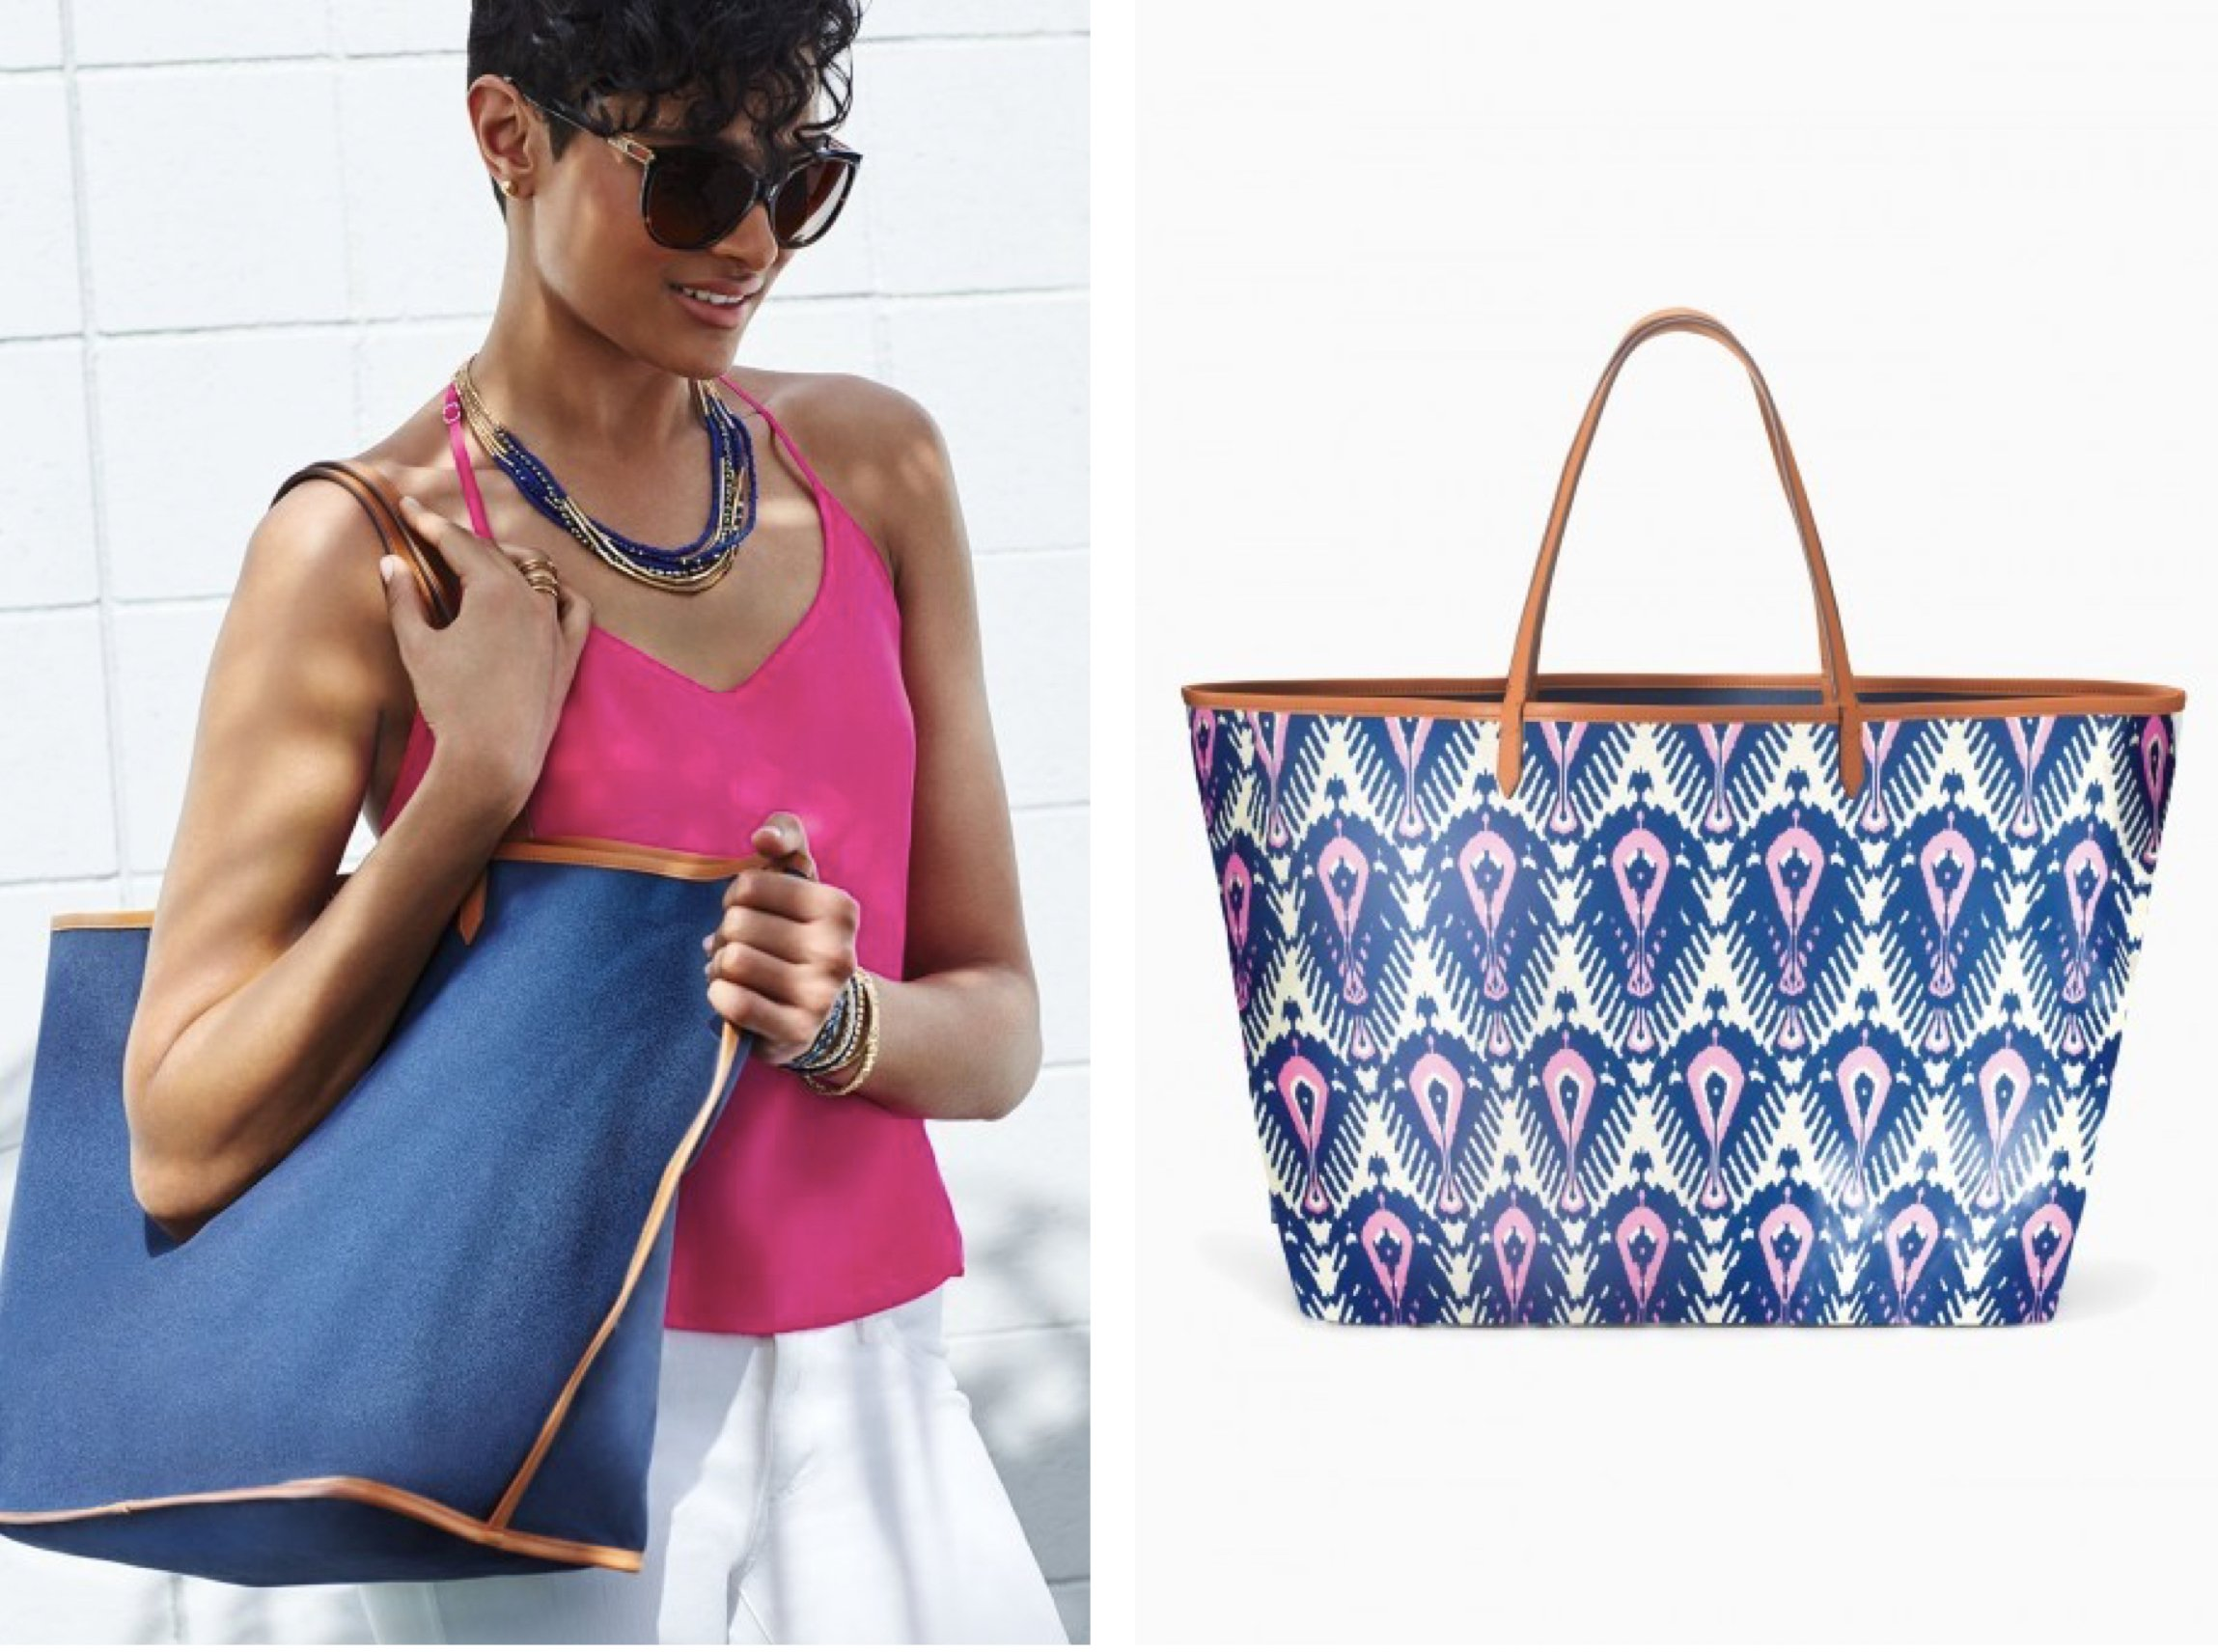 Reversible Tote in Denim & Ikat Prints, back to school tote